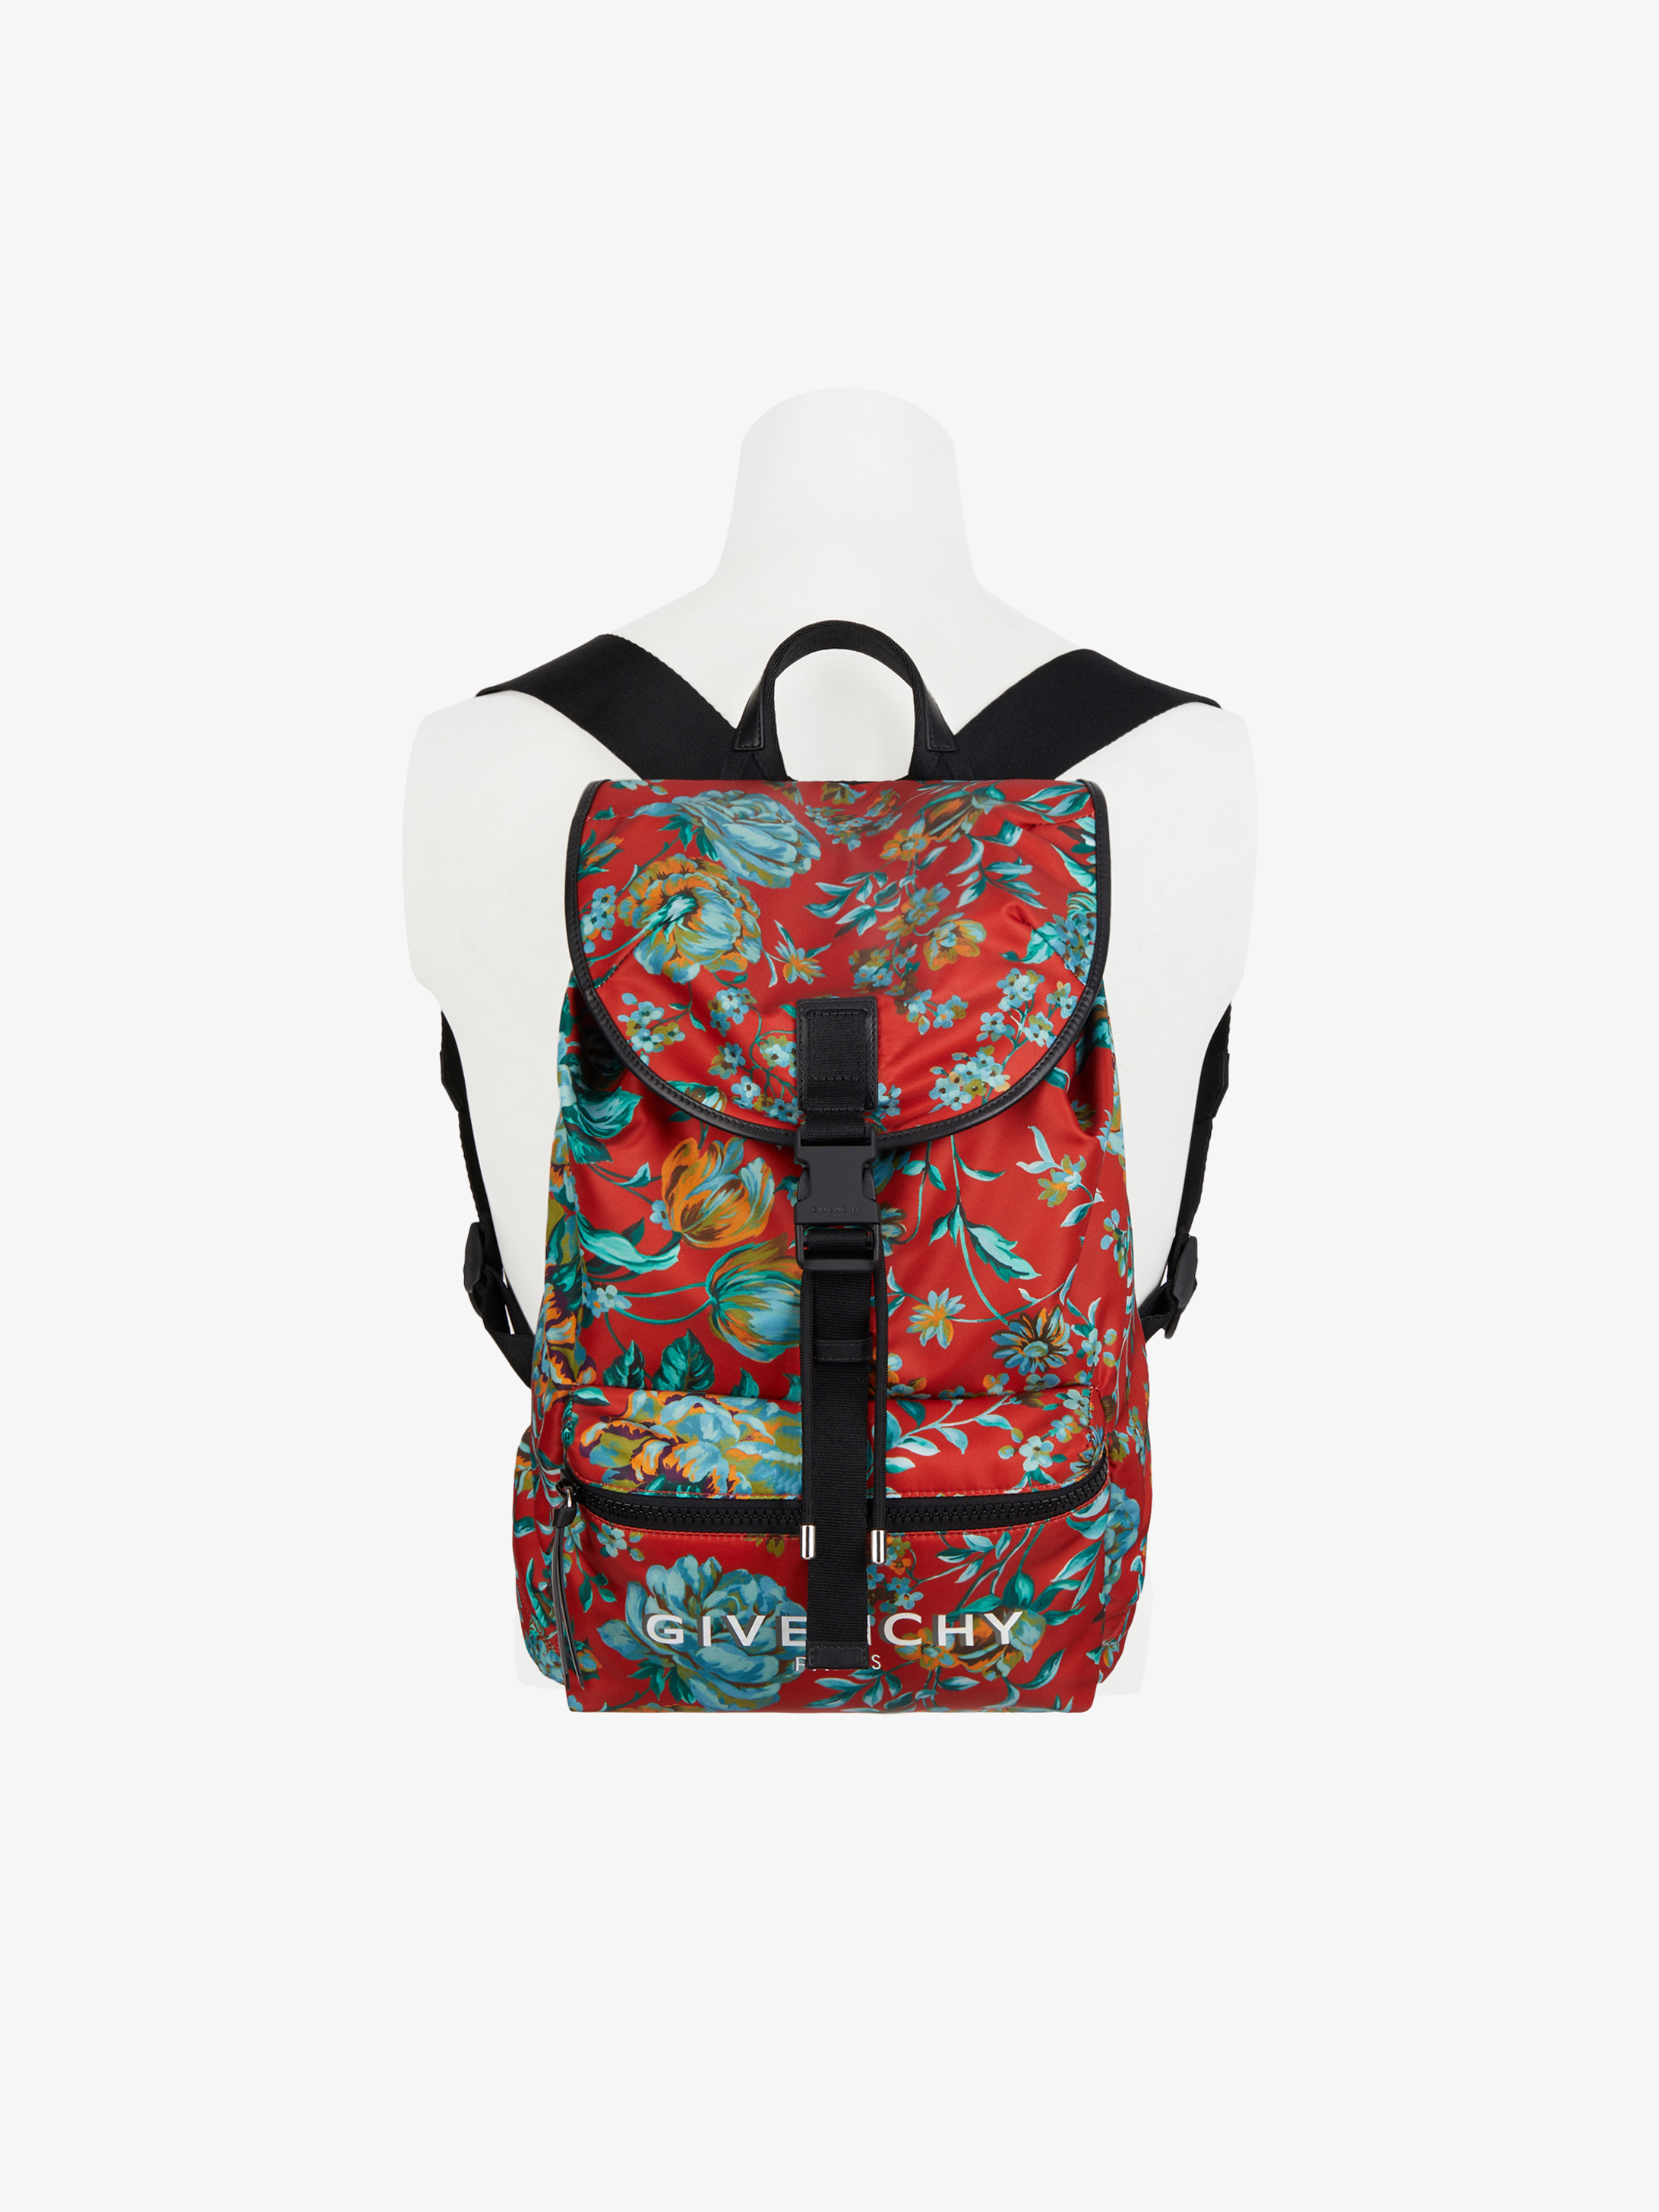 GIVENCHY packaway backpack in floral printed nylon